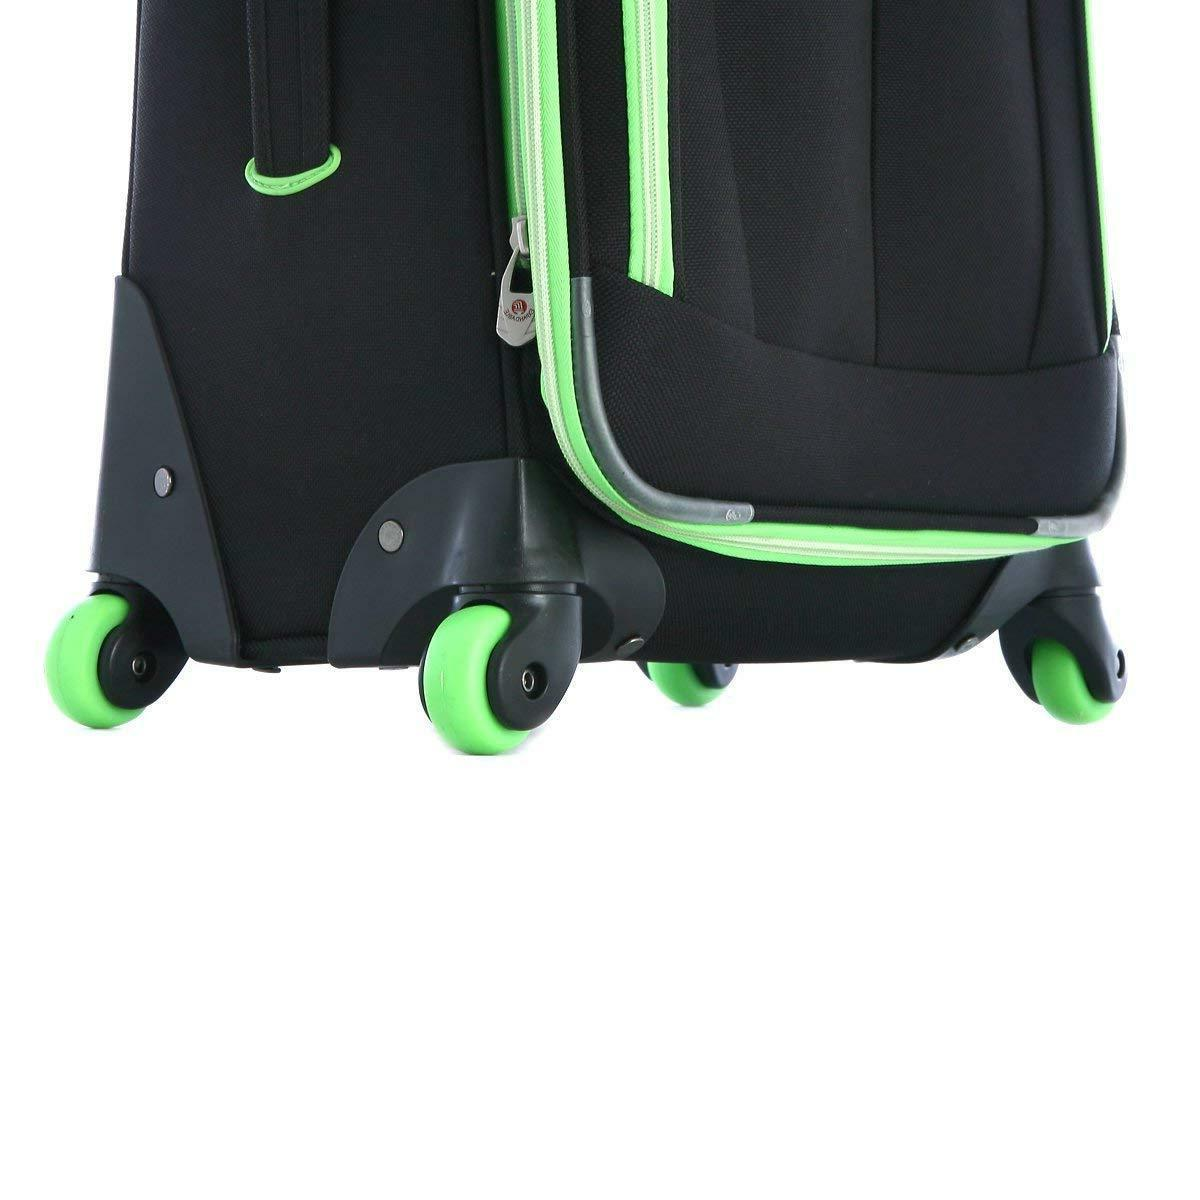 Olympia Evansville Luggage Set-Black Lime color